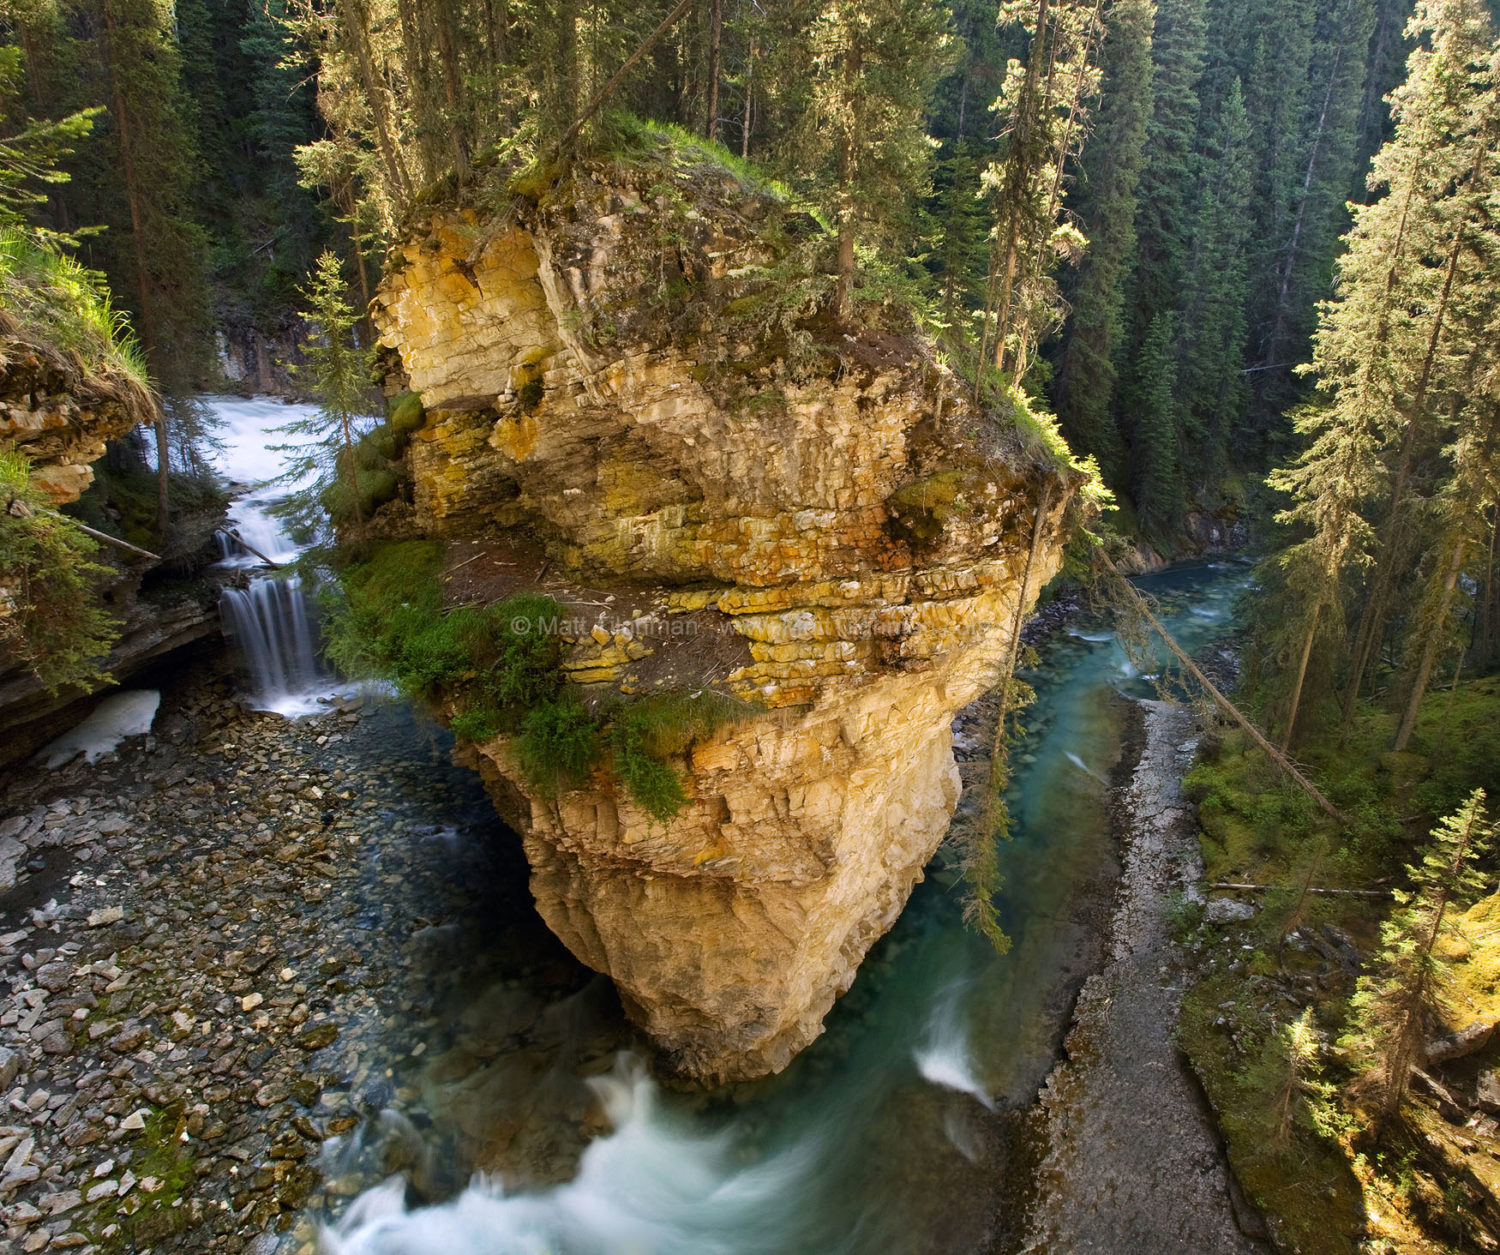 Fine art stock photograph of Johnston Canyon, in Canada's Banff National Park. A river bends around jagged moutain terrain.